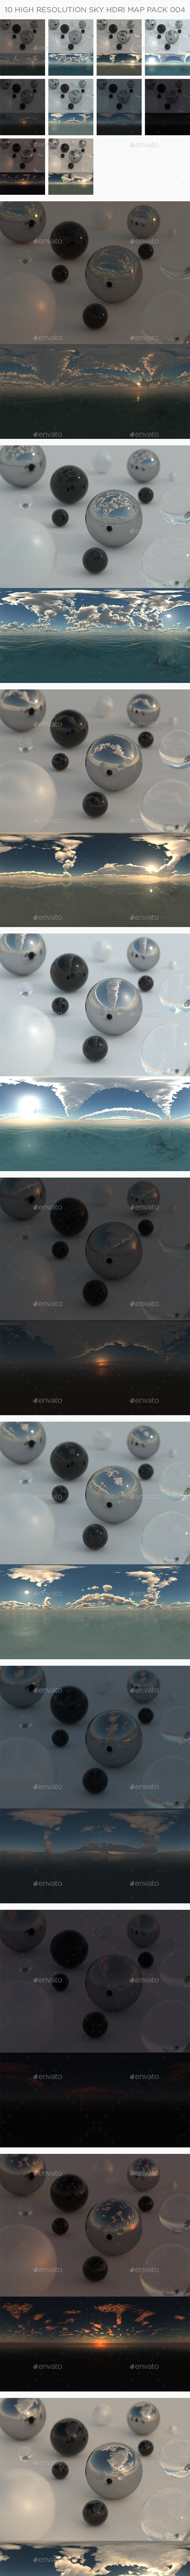 10 High Resolution Sky HDRi Maps Pack 004 - 3DOcean Item for Sale